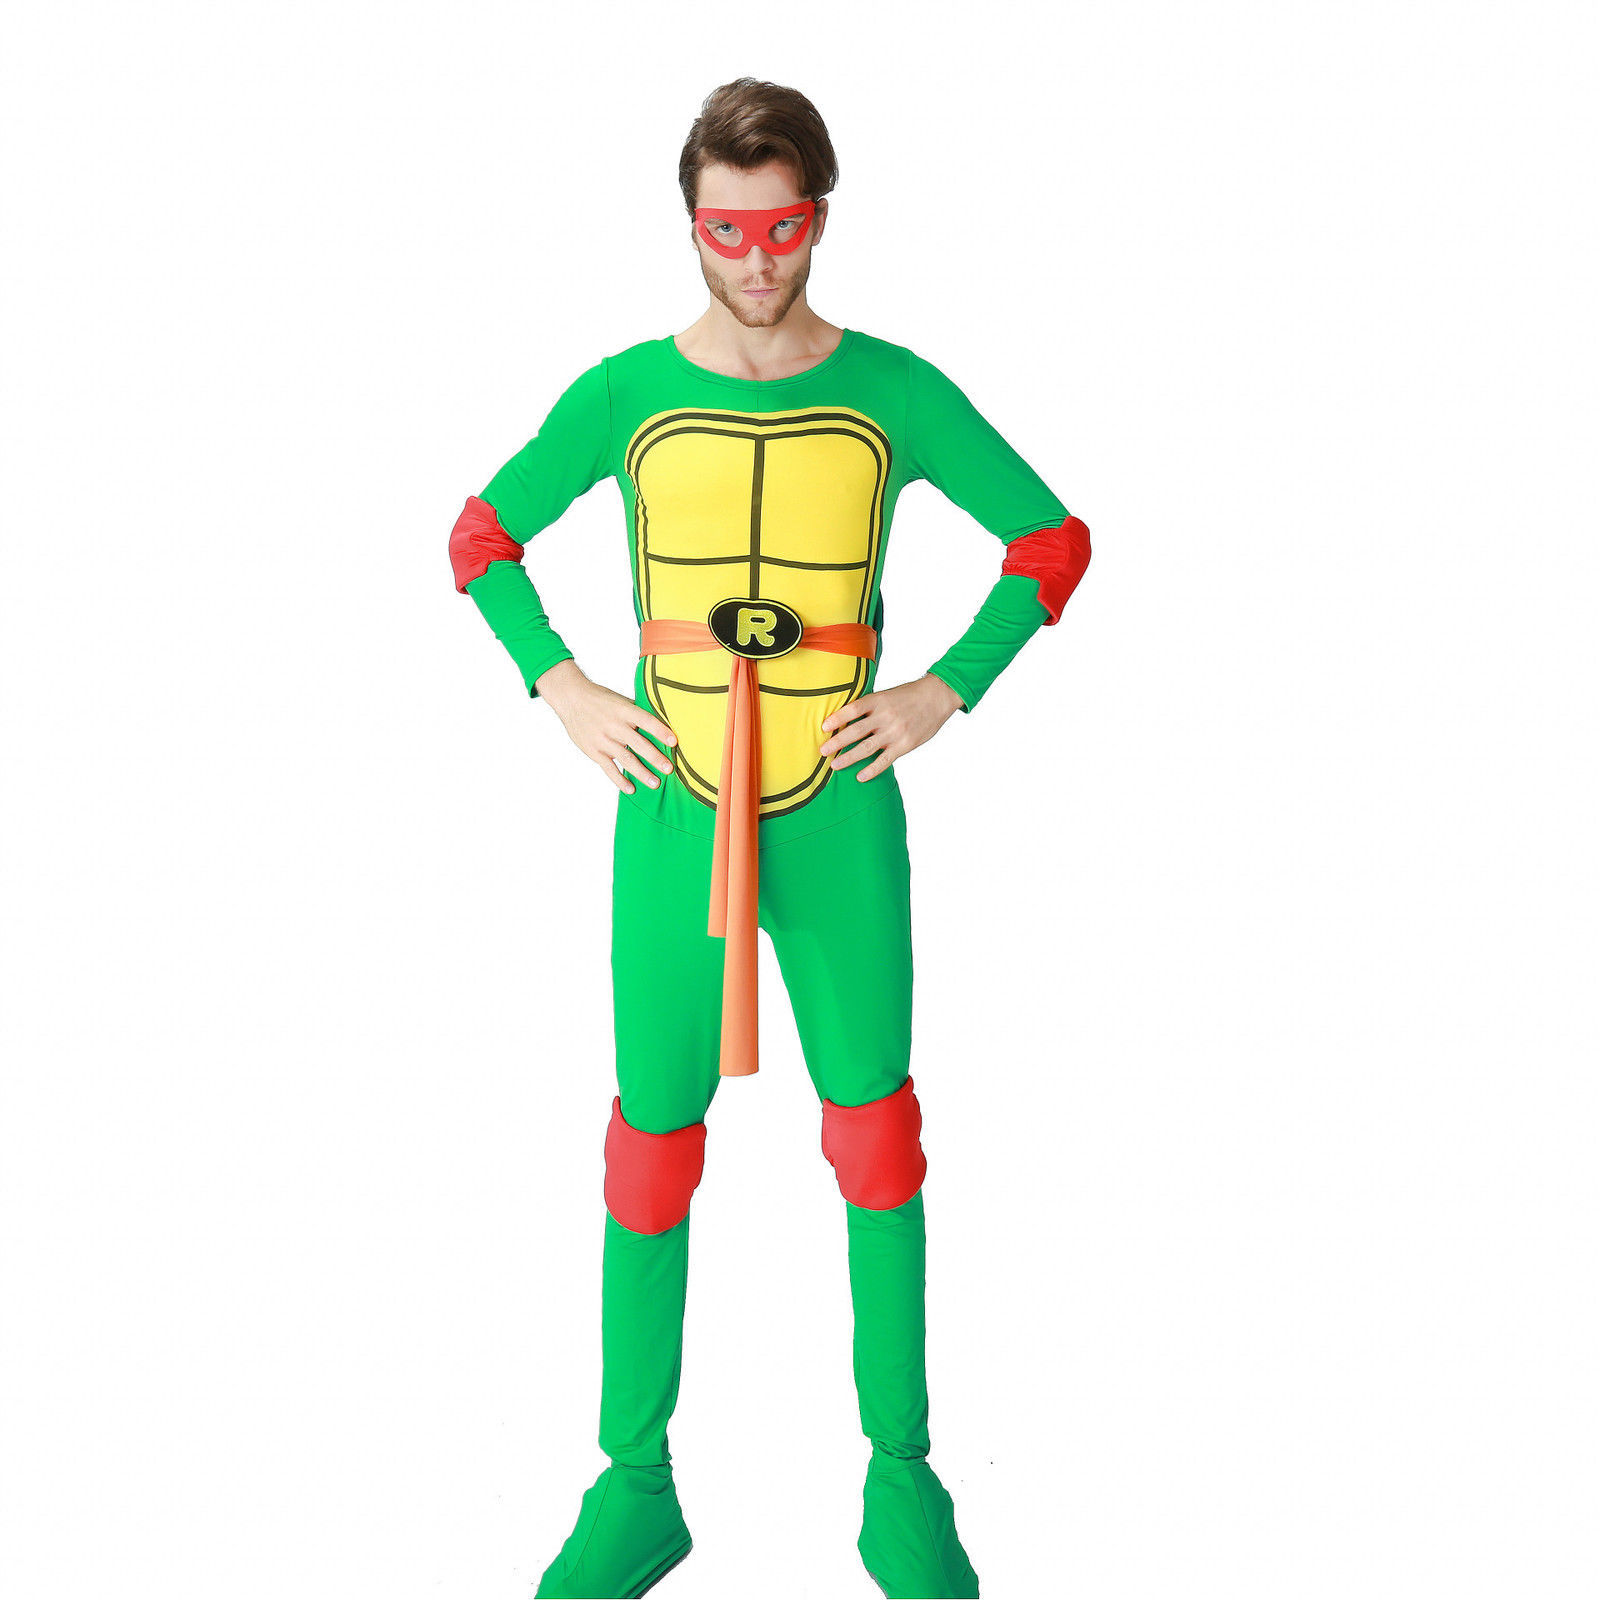 Halloween Ninja Turtle Adult Jumpsuit Cosplay Costume Suit Bathrobe Pajamas